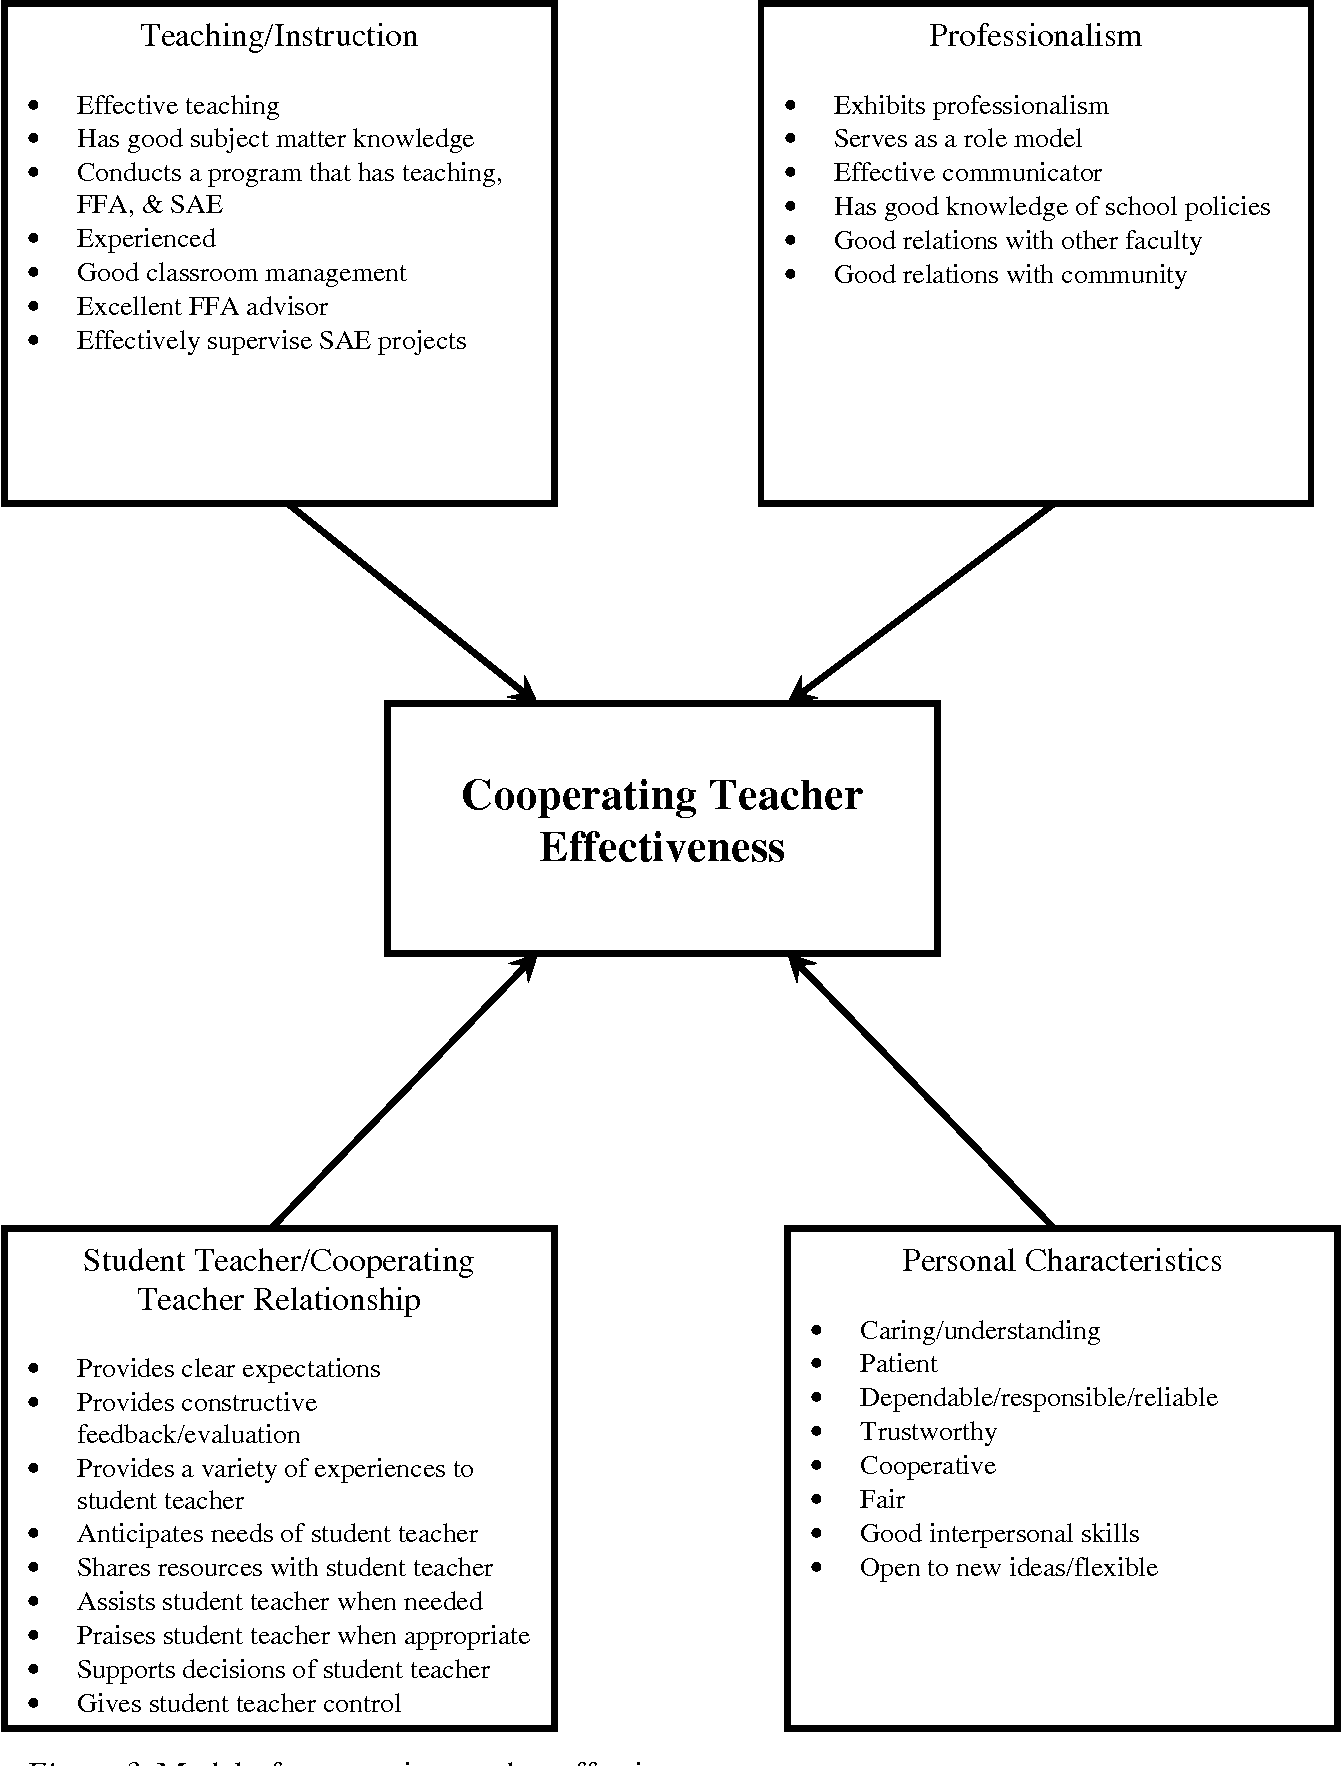 DEVELOPING A MODEL OF COOPERATING TEACHER EFFECTIVENESS